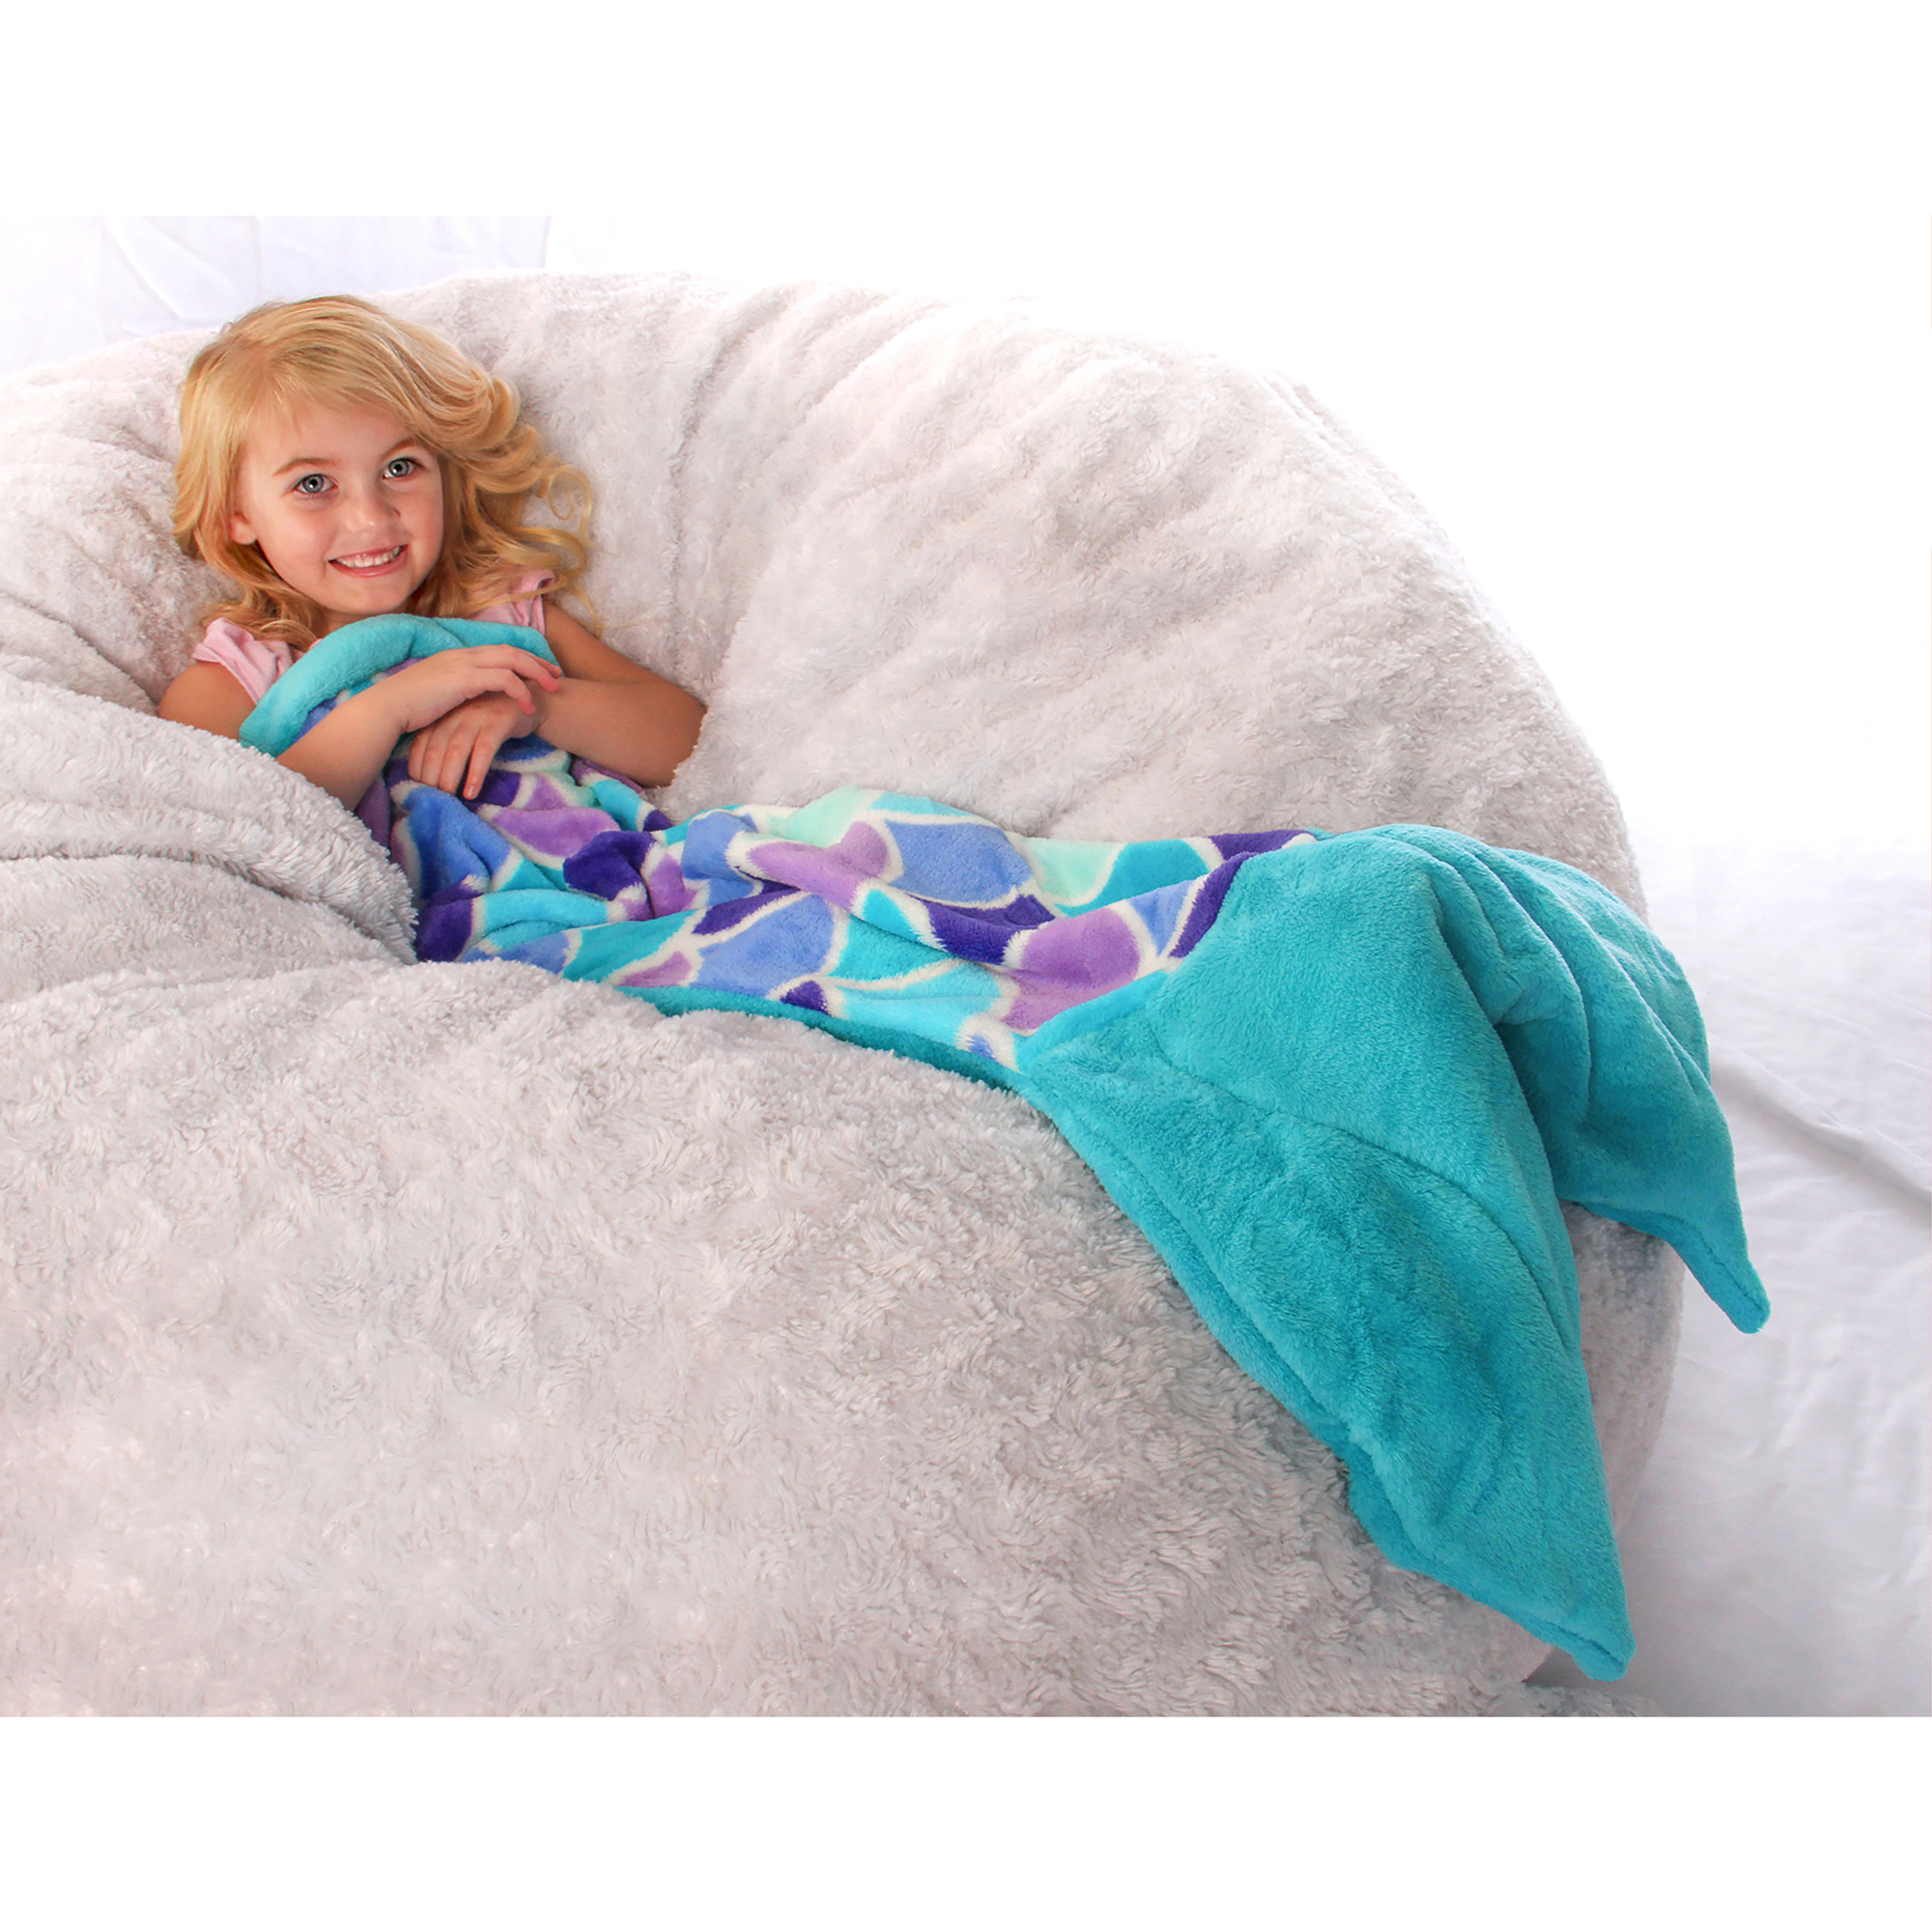 Mermaid Tail Blankets For Kids Toddler And Adults From Fin Fun